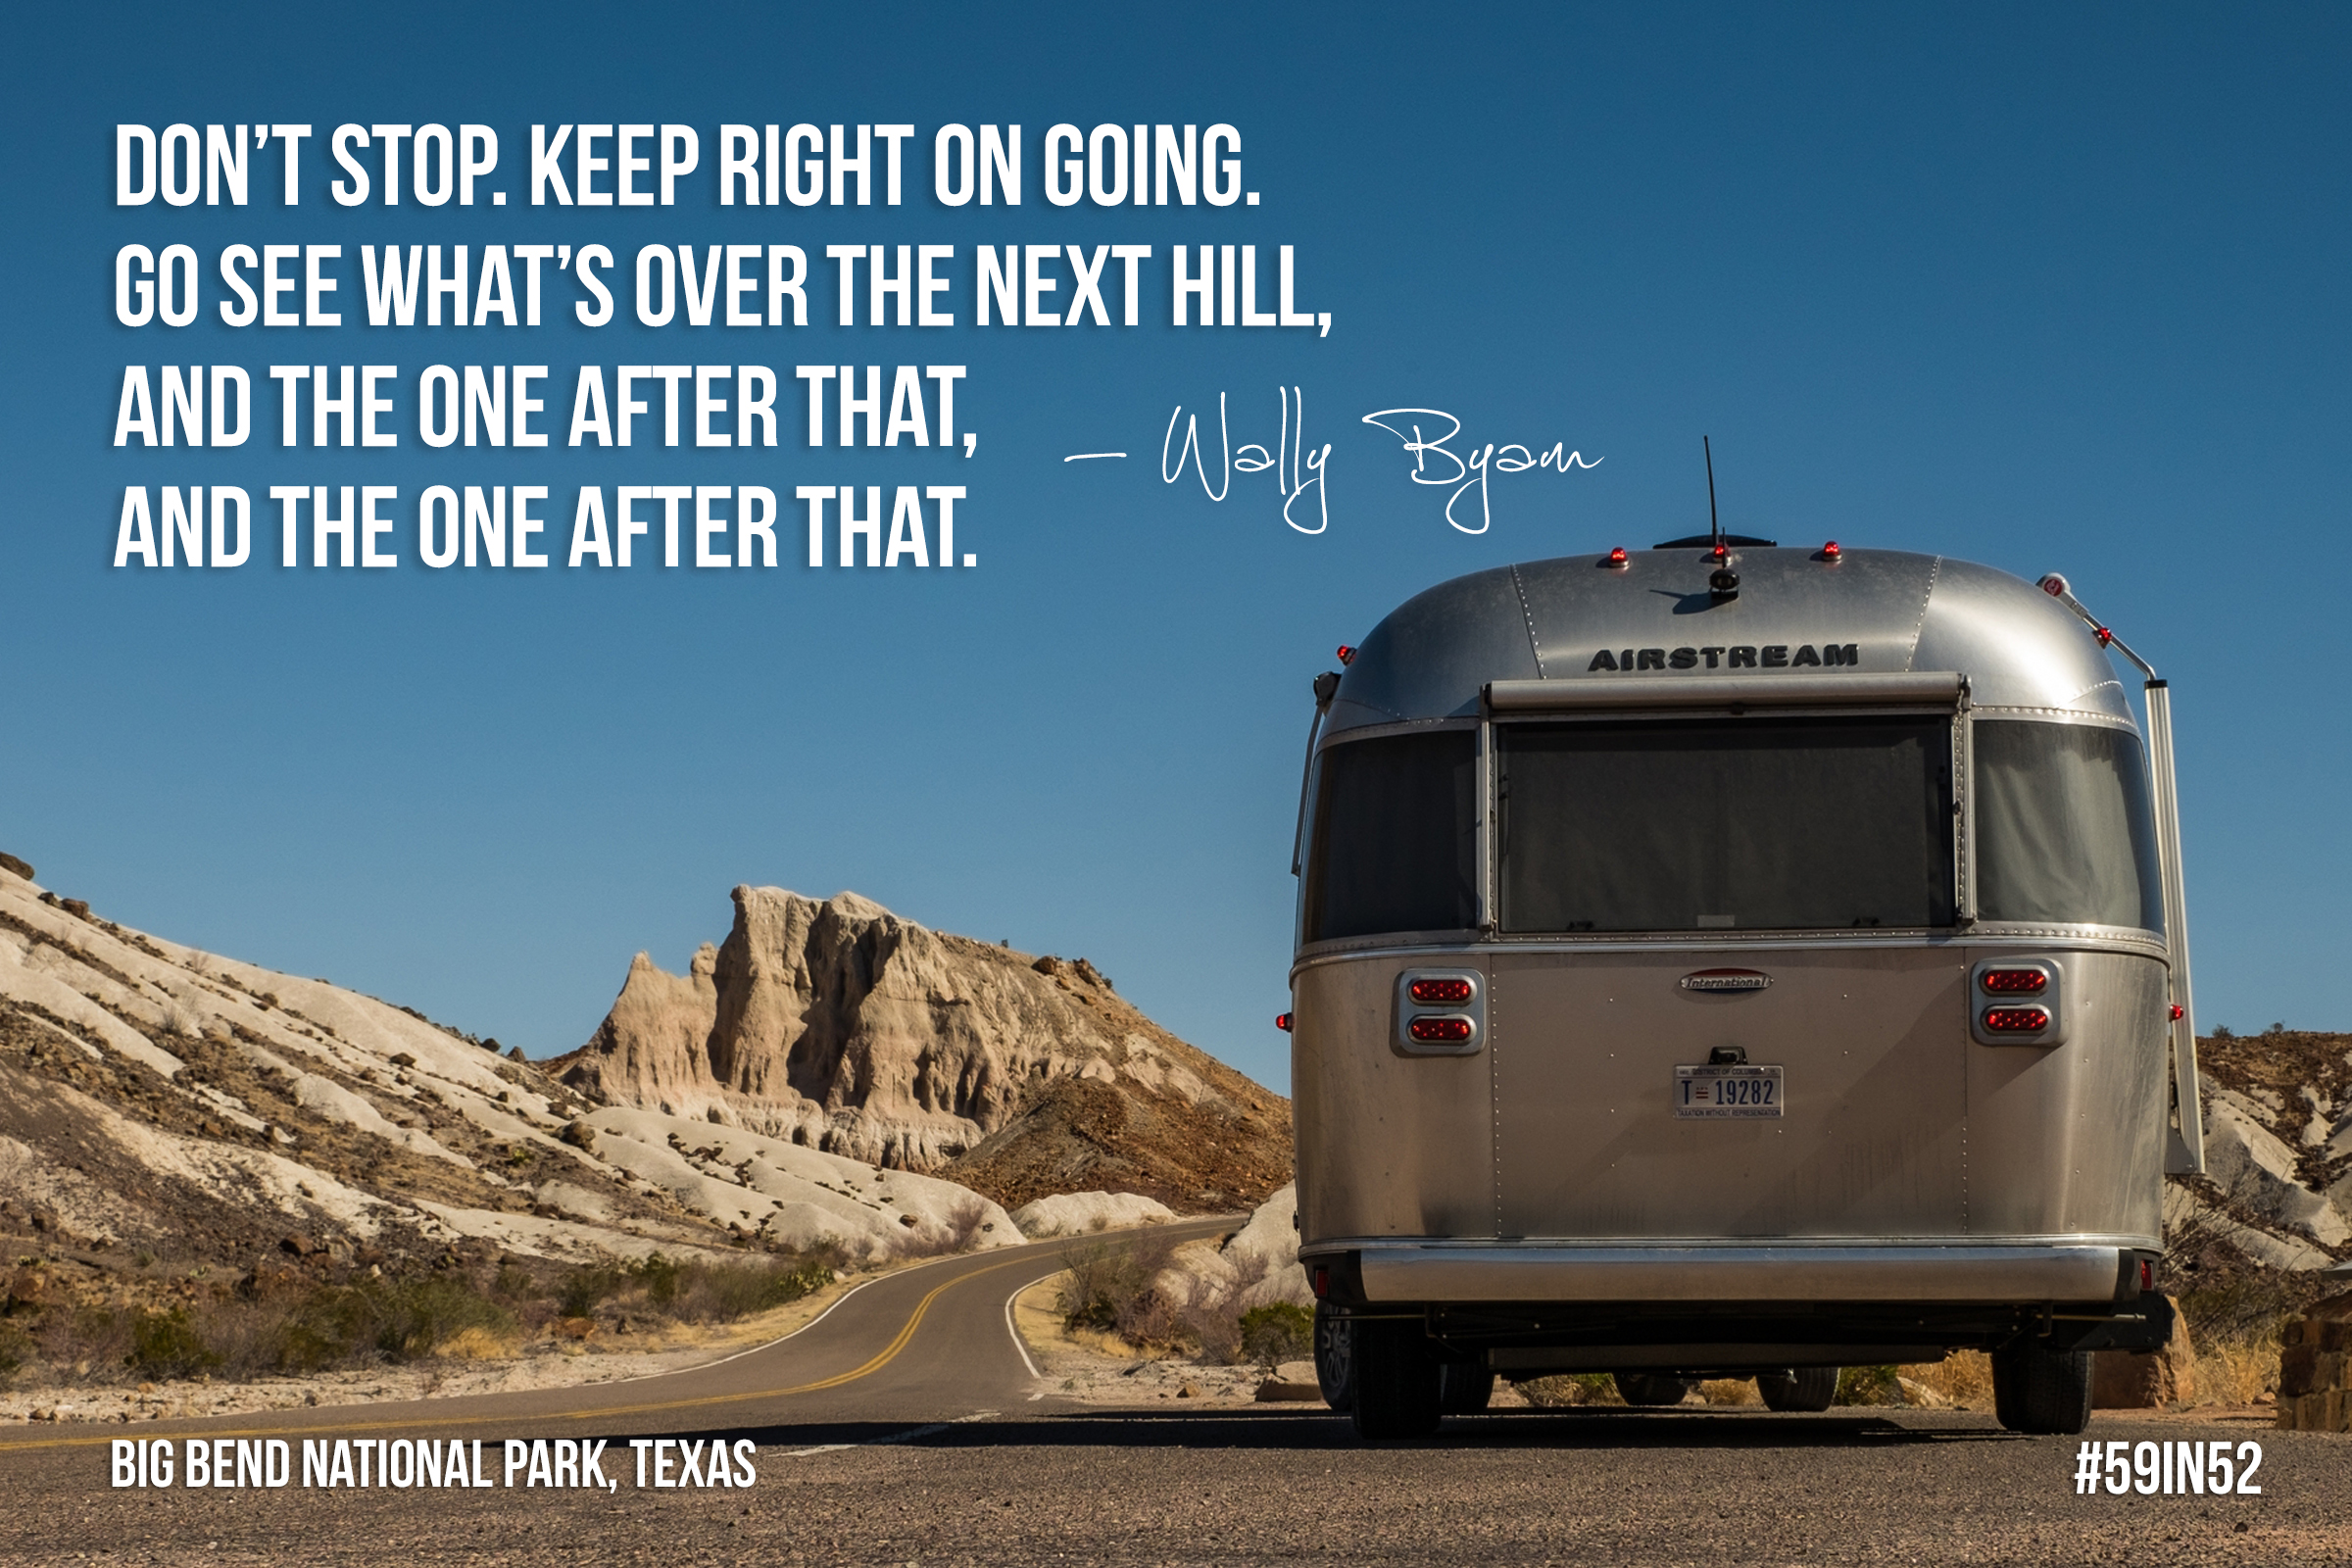 'Don't stop, keep right on going. Go see what's over the next hill, and the one after that, and the one after that.' - Wally Byam | Big Bend National Park, Texas, USA | #59in52